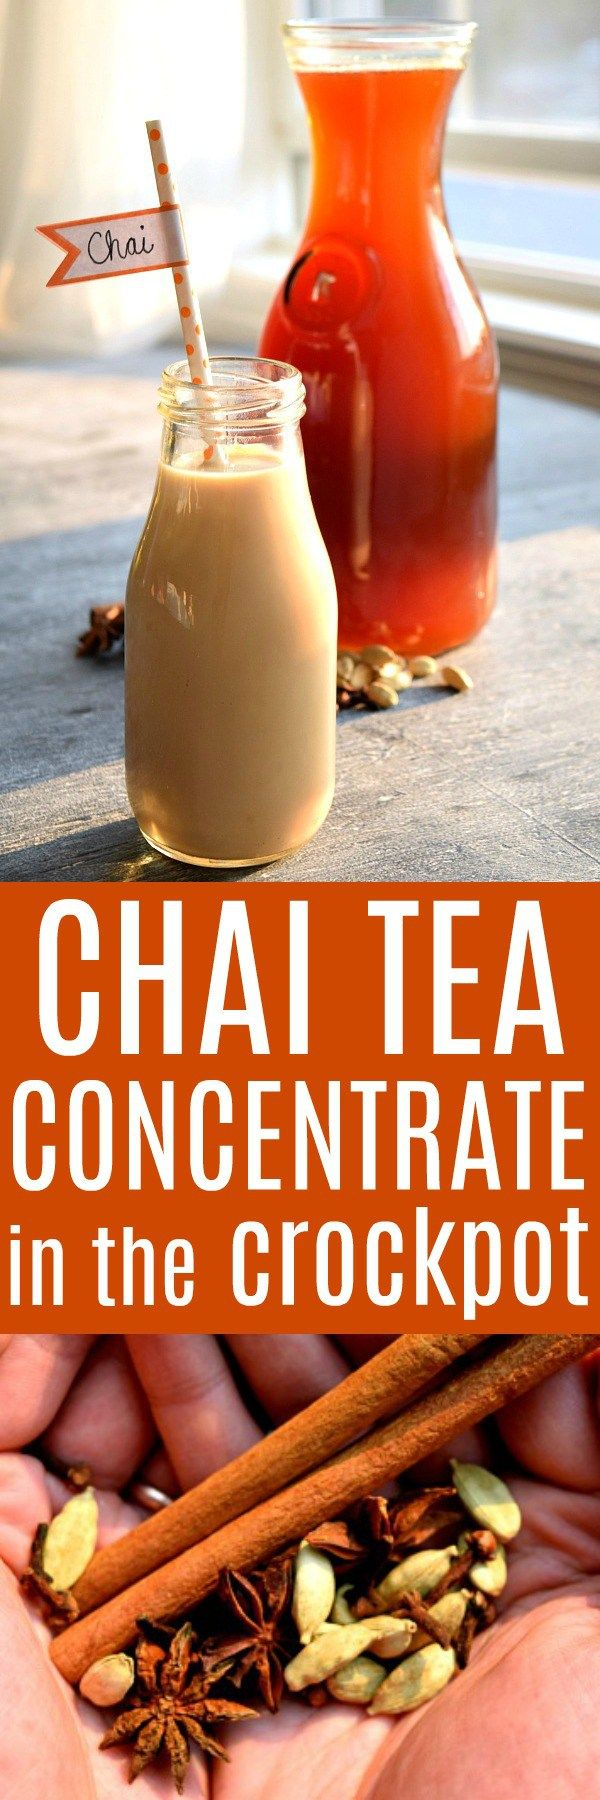 Crock Pot Chai Tea Concentrate, made with cinnamon sticks, cardamom pods, fresh ginger and star anise